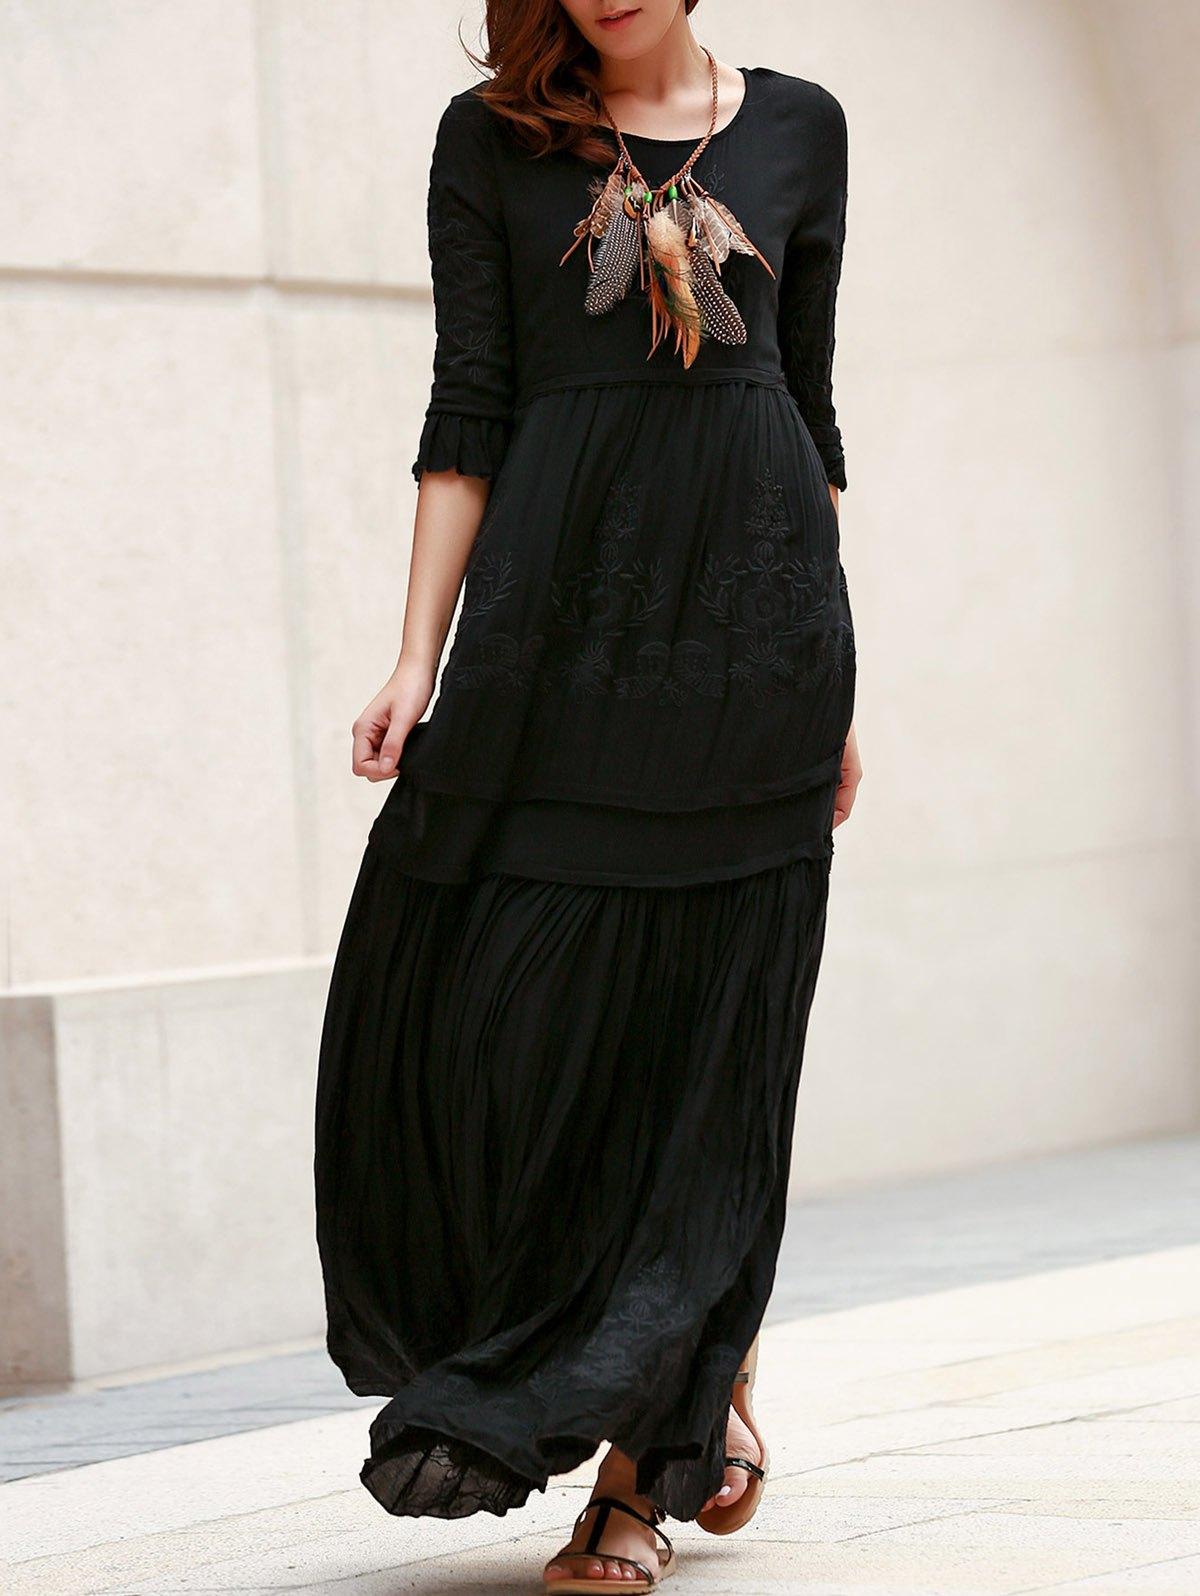 Trendy 3/4 Sleeve Round Collar Solid Color Embroidered Women's Dress